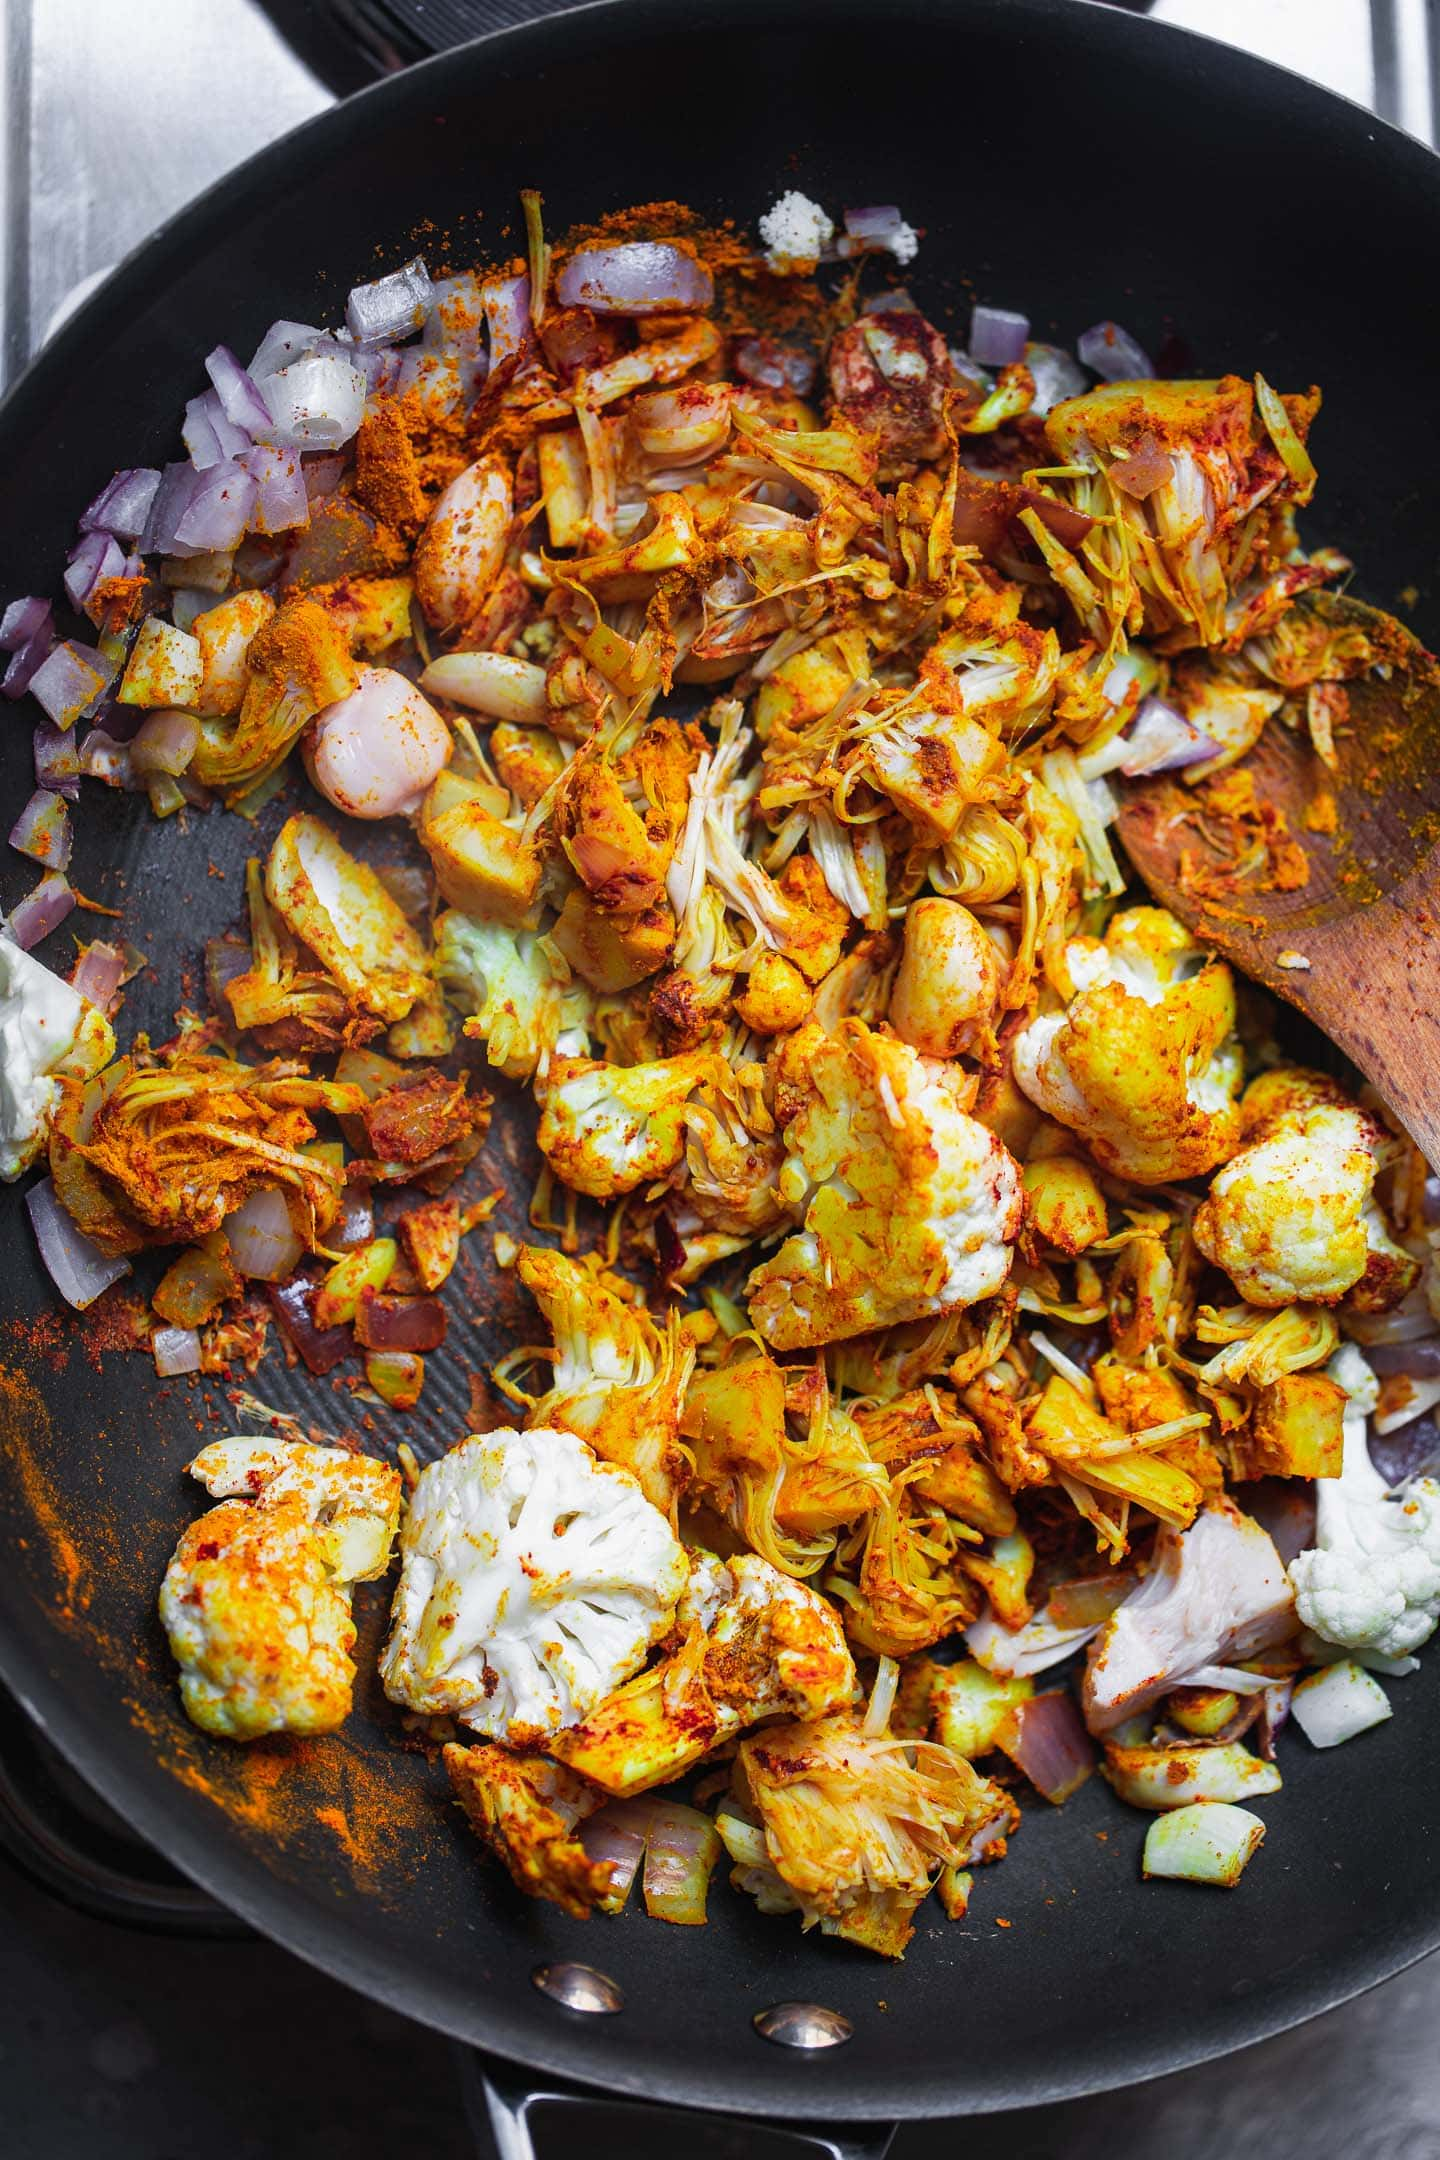 Vegetables and jackfruit in a frying pan with spices